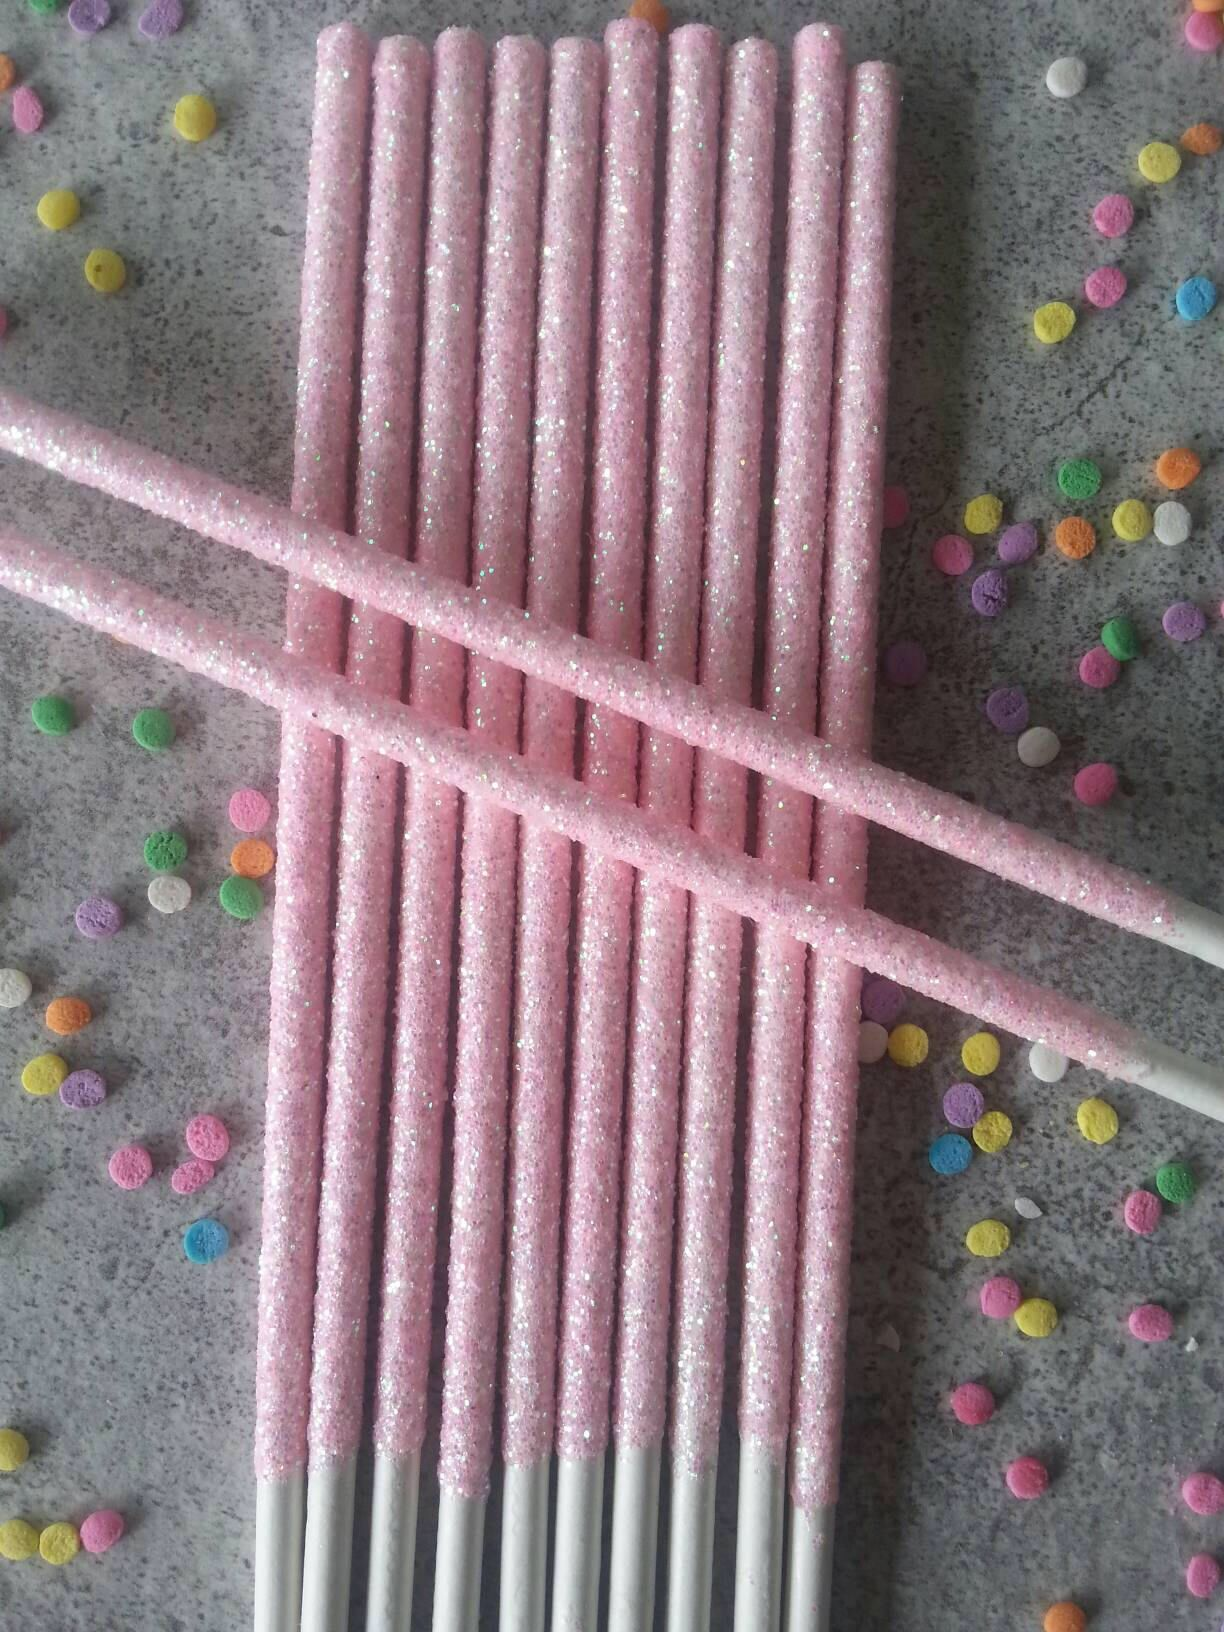 and tea party party birthday glitter 12 Real pink glitter candy apple sticks dessert bar baby shower